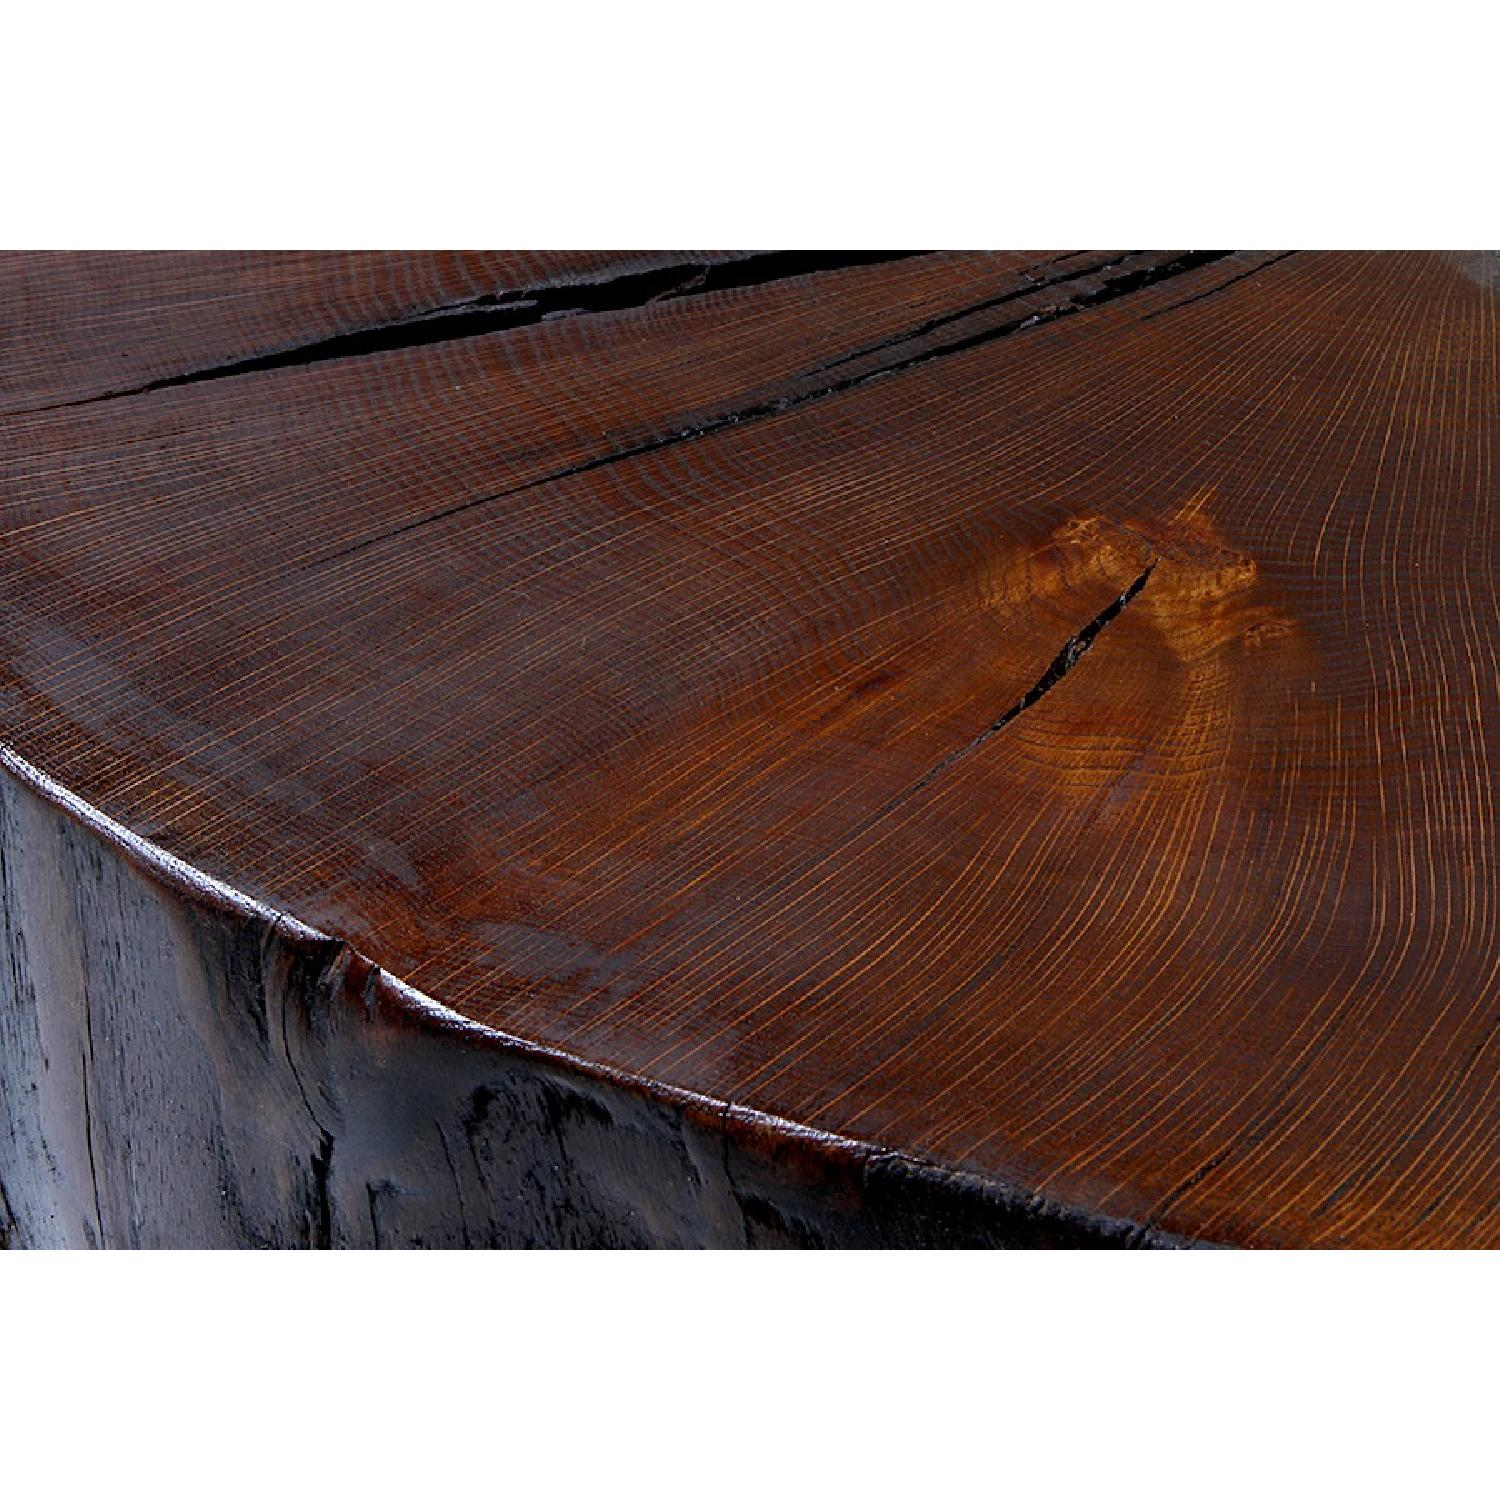 Reclaimed Oak Tree Trunk Table on Reclaimed Industrial Casters - image-2